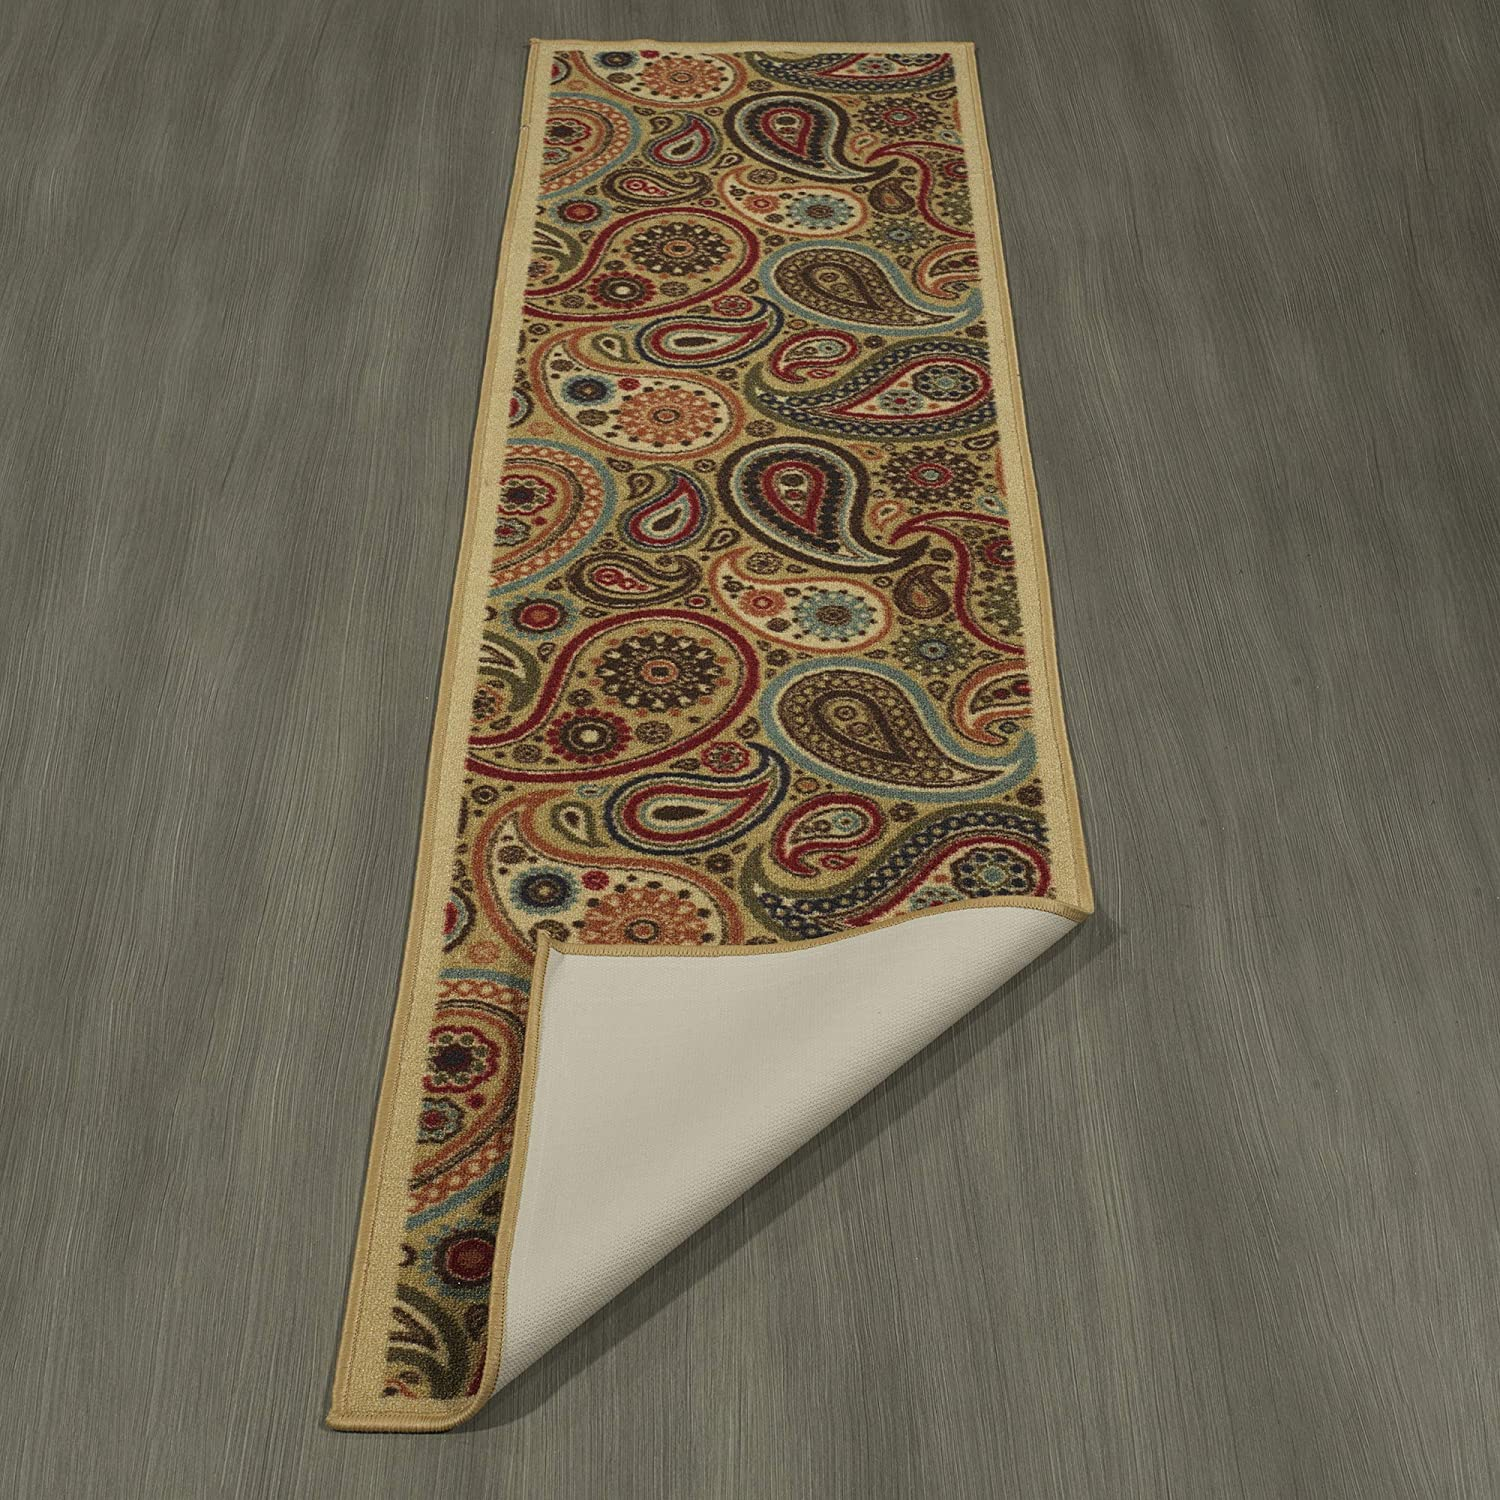 110 W X 7 L Rubber Backing Non-Slip Beige Ottomanson Ottohome Collection Contemporary Paisley Design Modern Runner Rug with Non-Skid